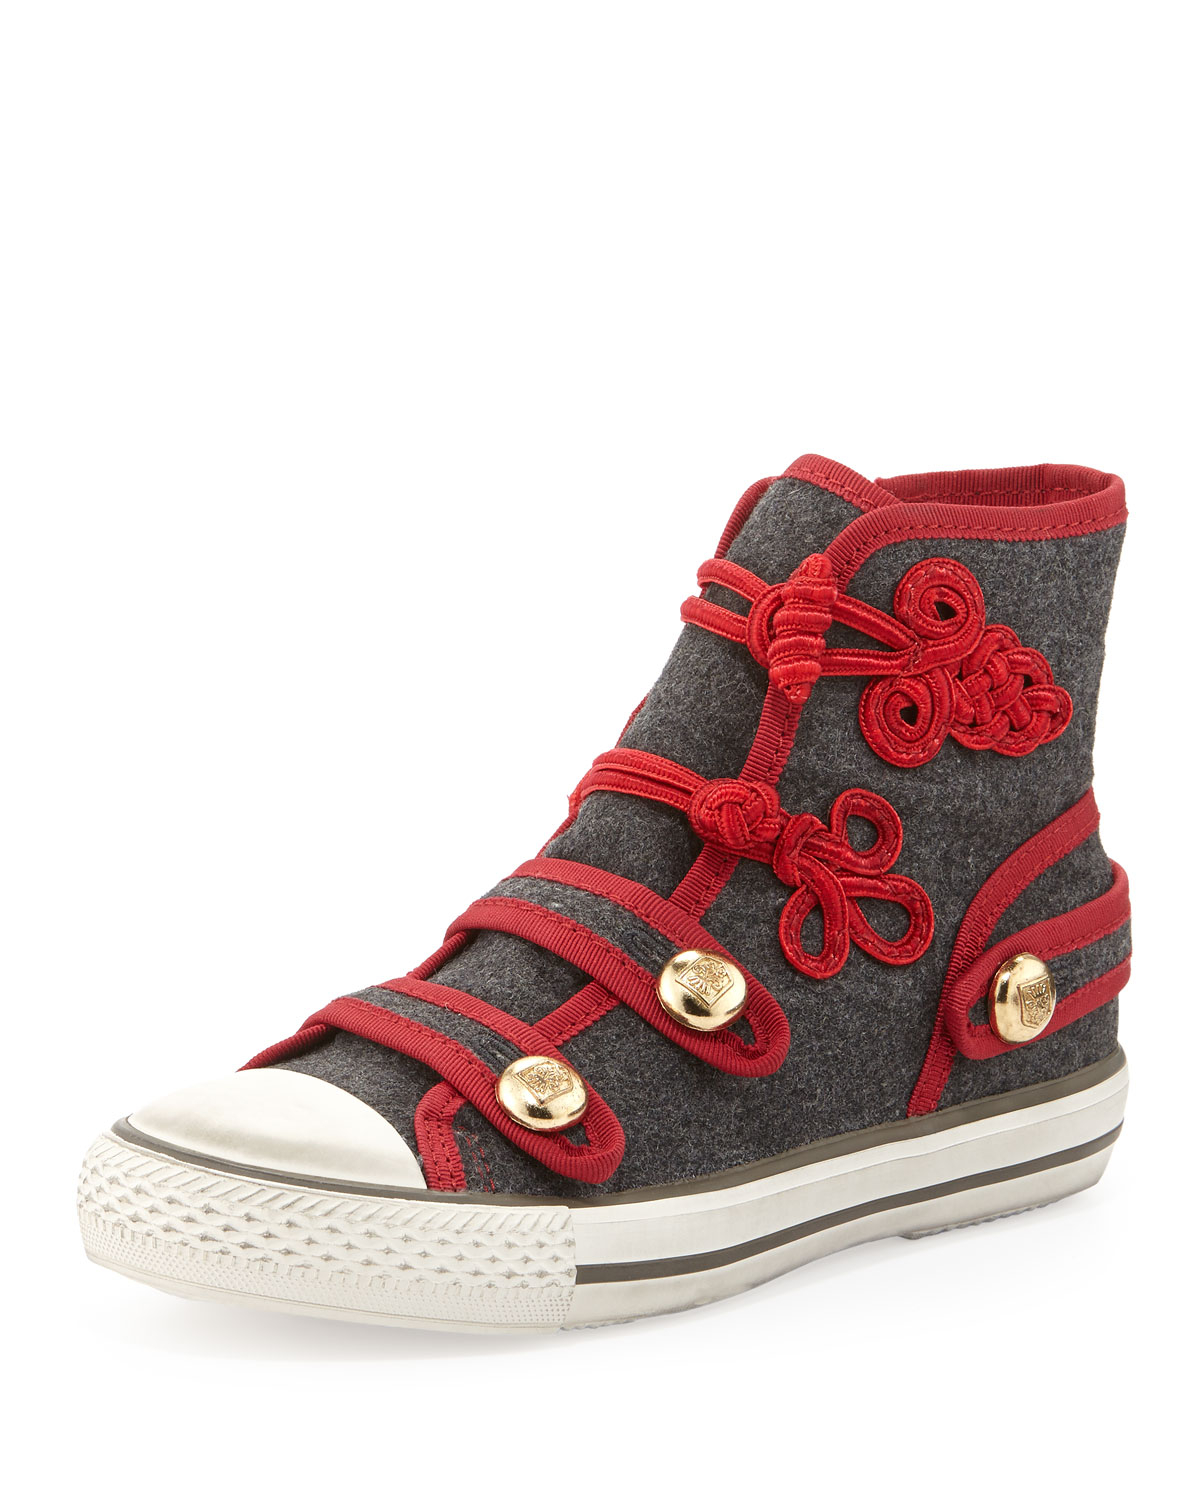 ash victory flannel high top sneaker gray red in gray 5 lyst. Black Bedroom Furniture Sets. Home Design Ideas